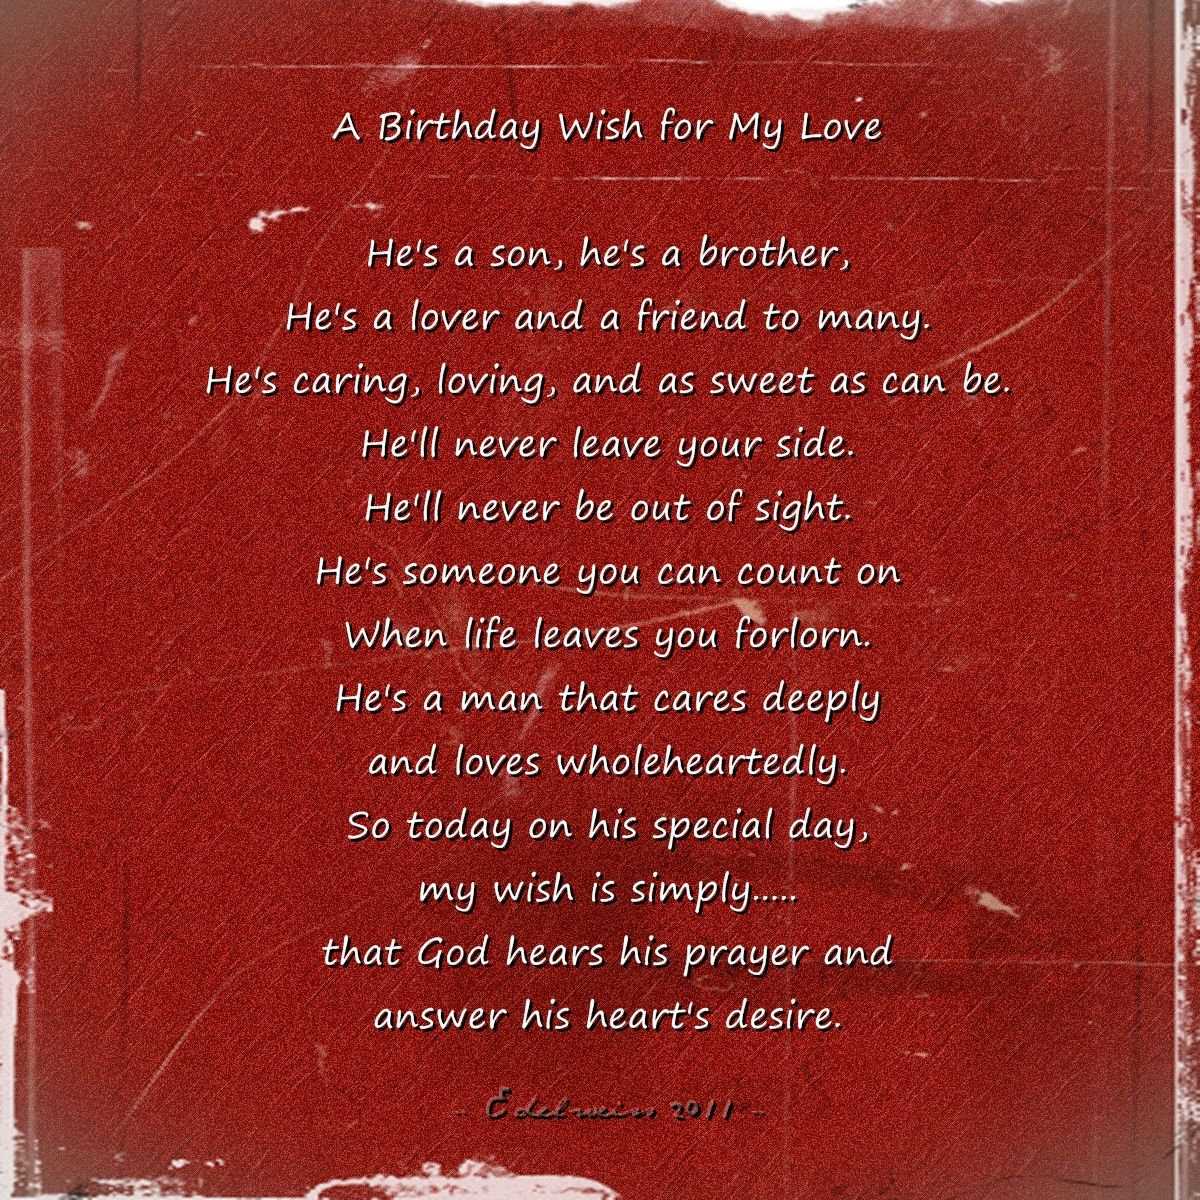 Love Quotes for Him bday wish for hon